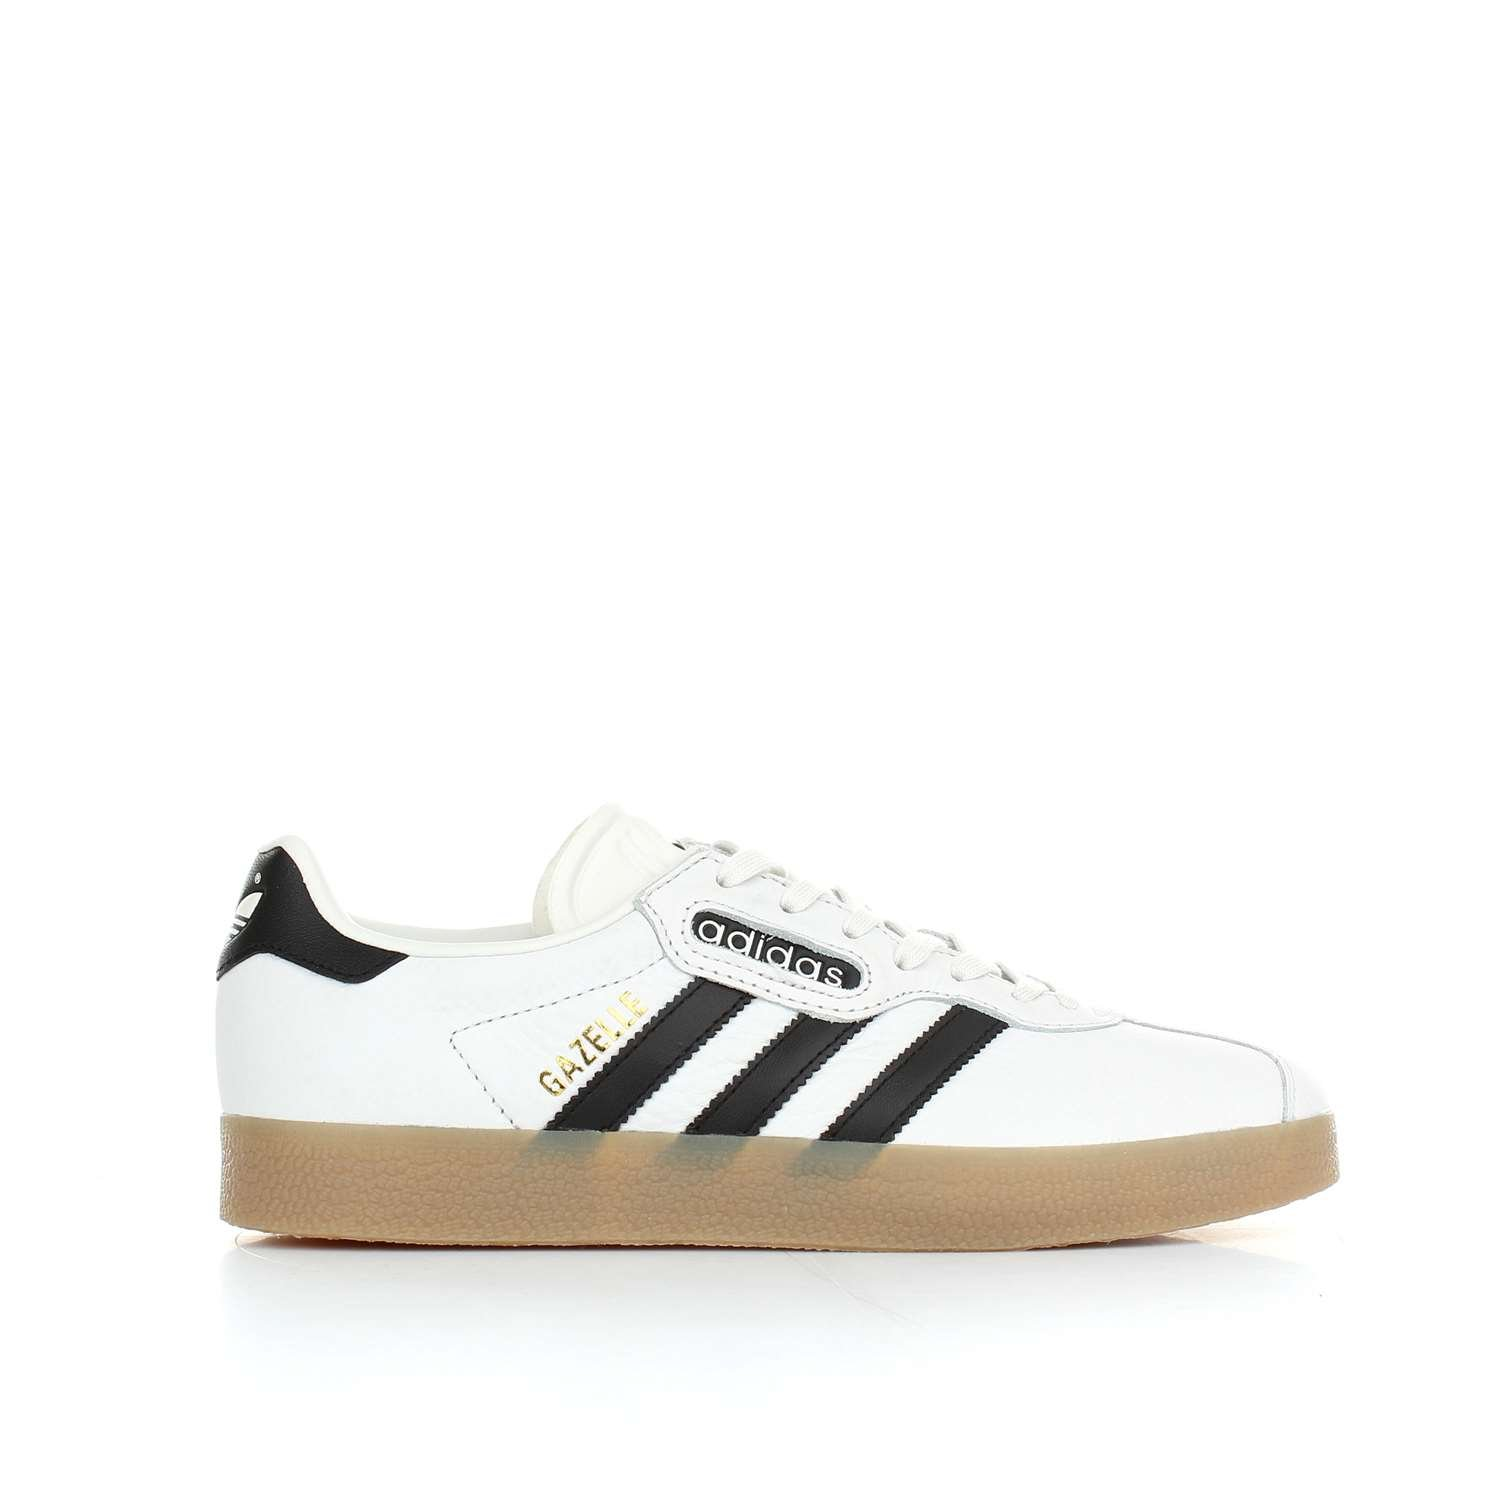 Adidas Trainer Scarpe Gazelle Super Vintage WhiteCore Black